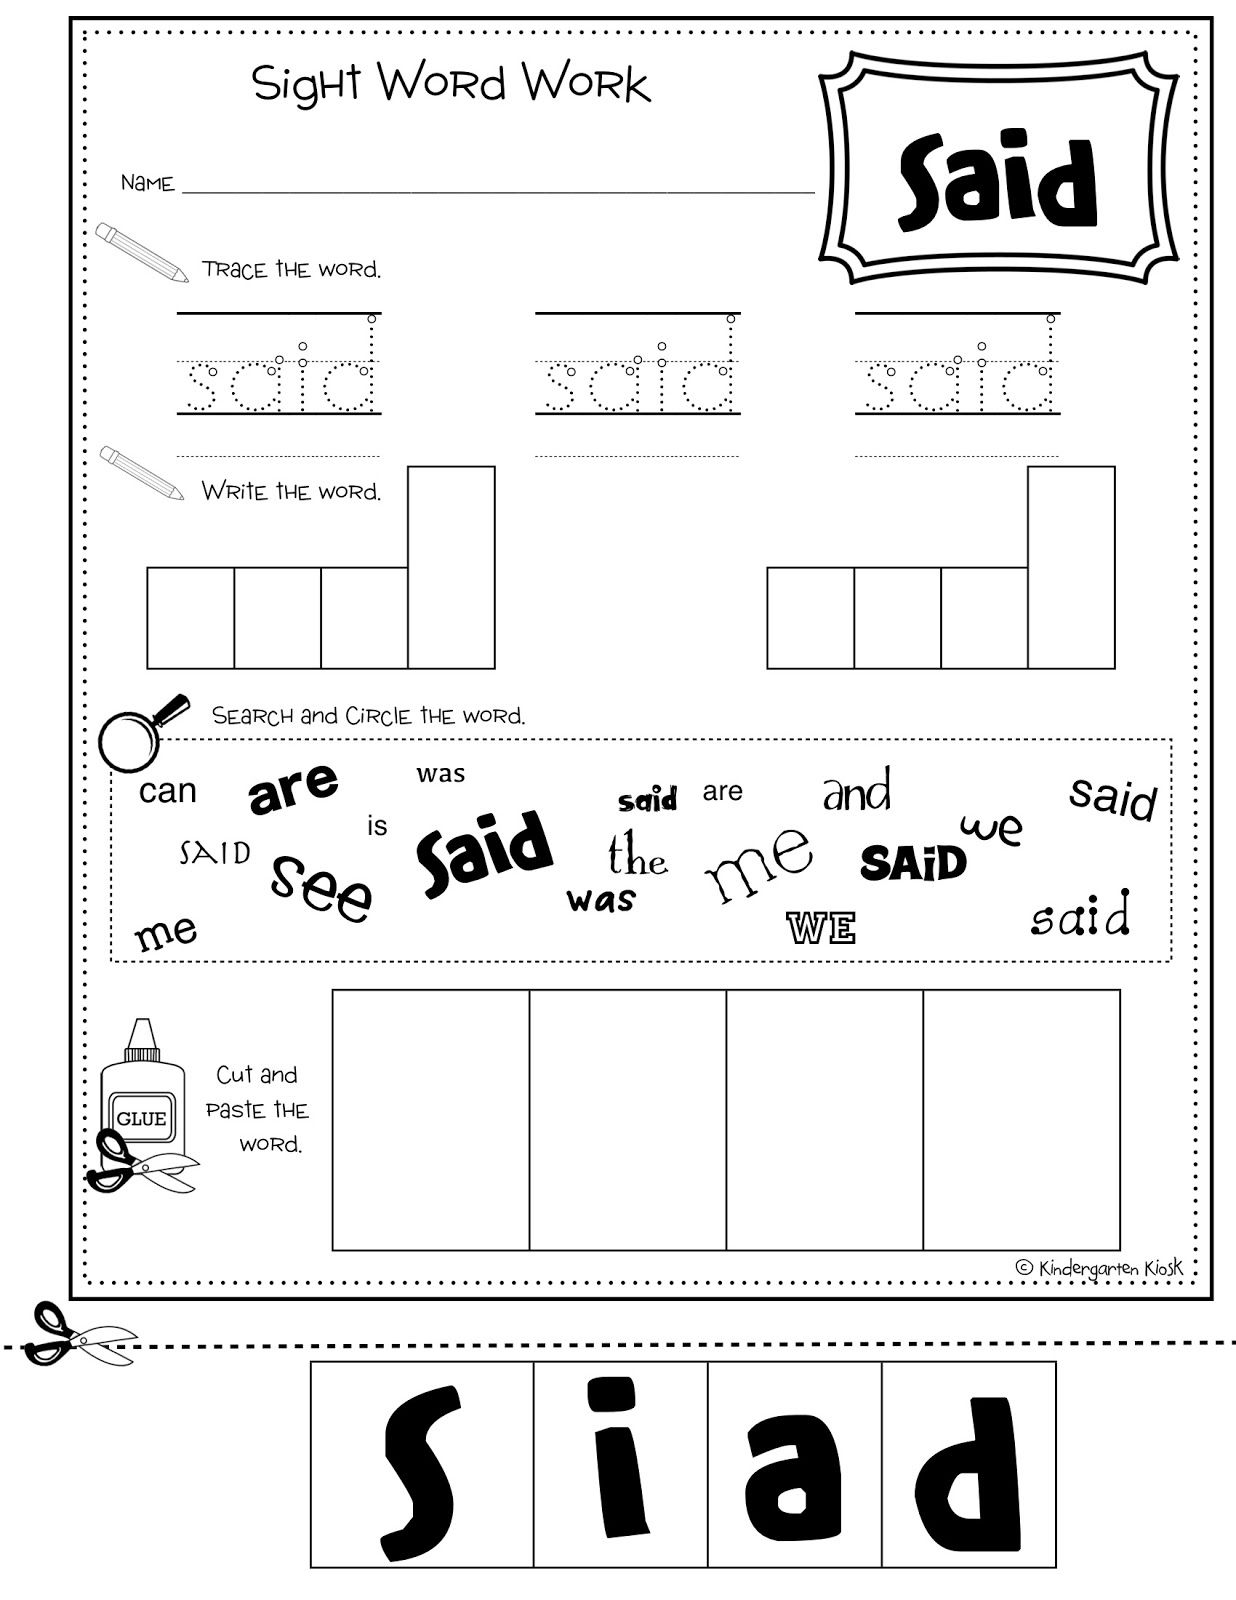 math worksheet : 1000 images about sight words on pinterest  sight word  : Kindergarten Sight Word Sentences Worksheets